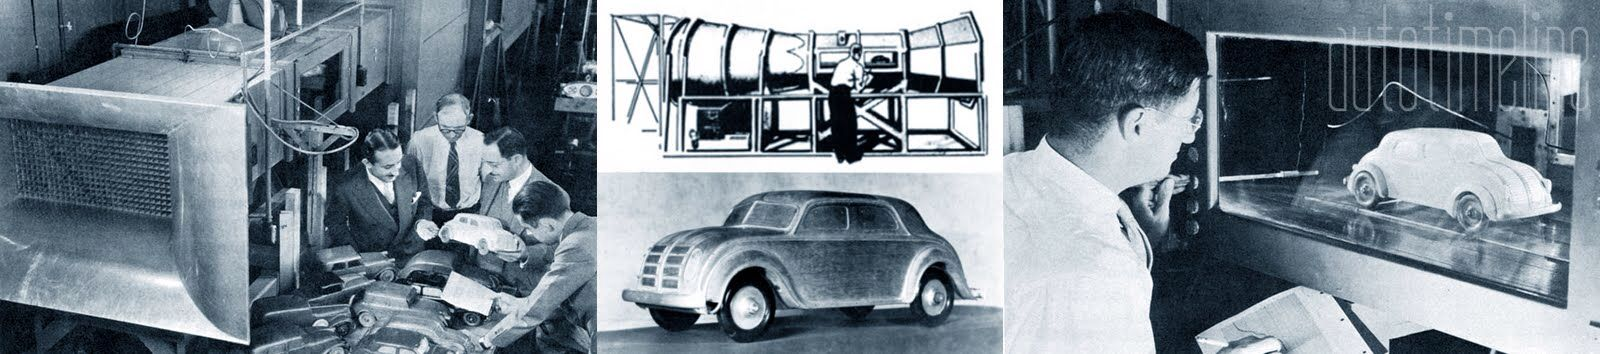 Pin by philip read on Cars: Chrysler Airflow   Chrysler airflow, Airflow,  Chrysler